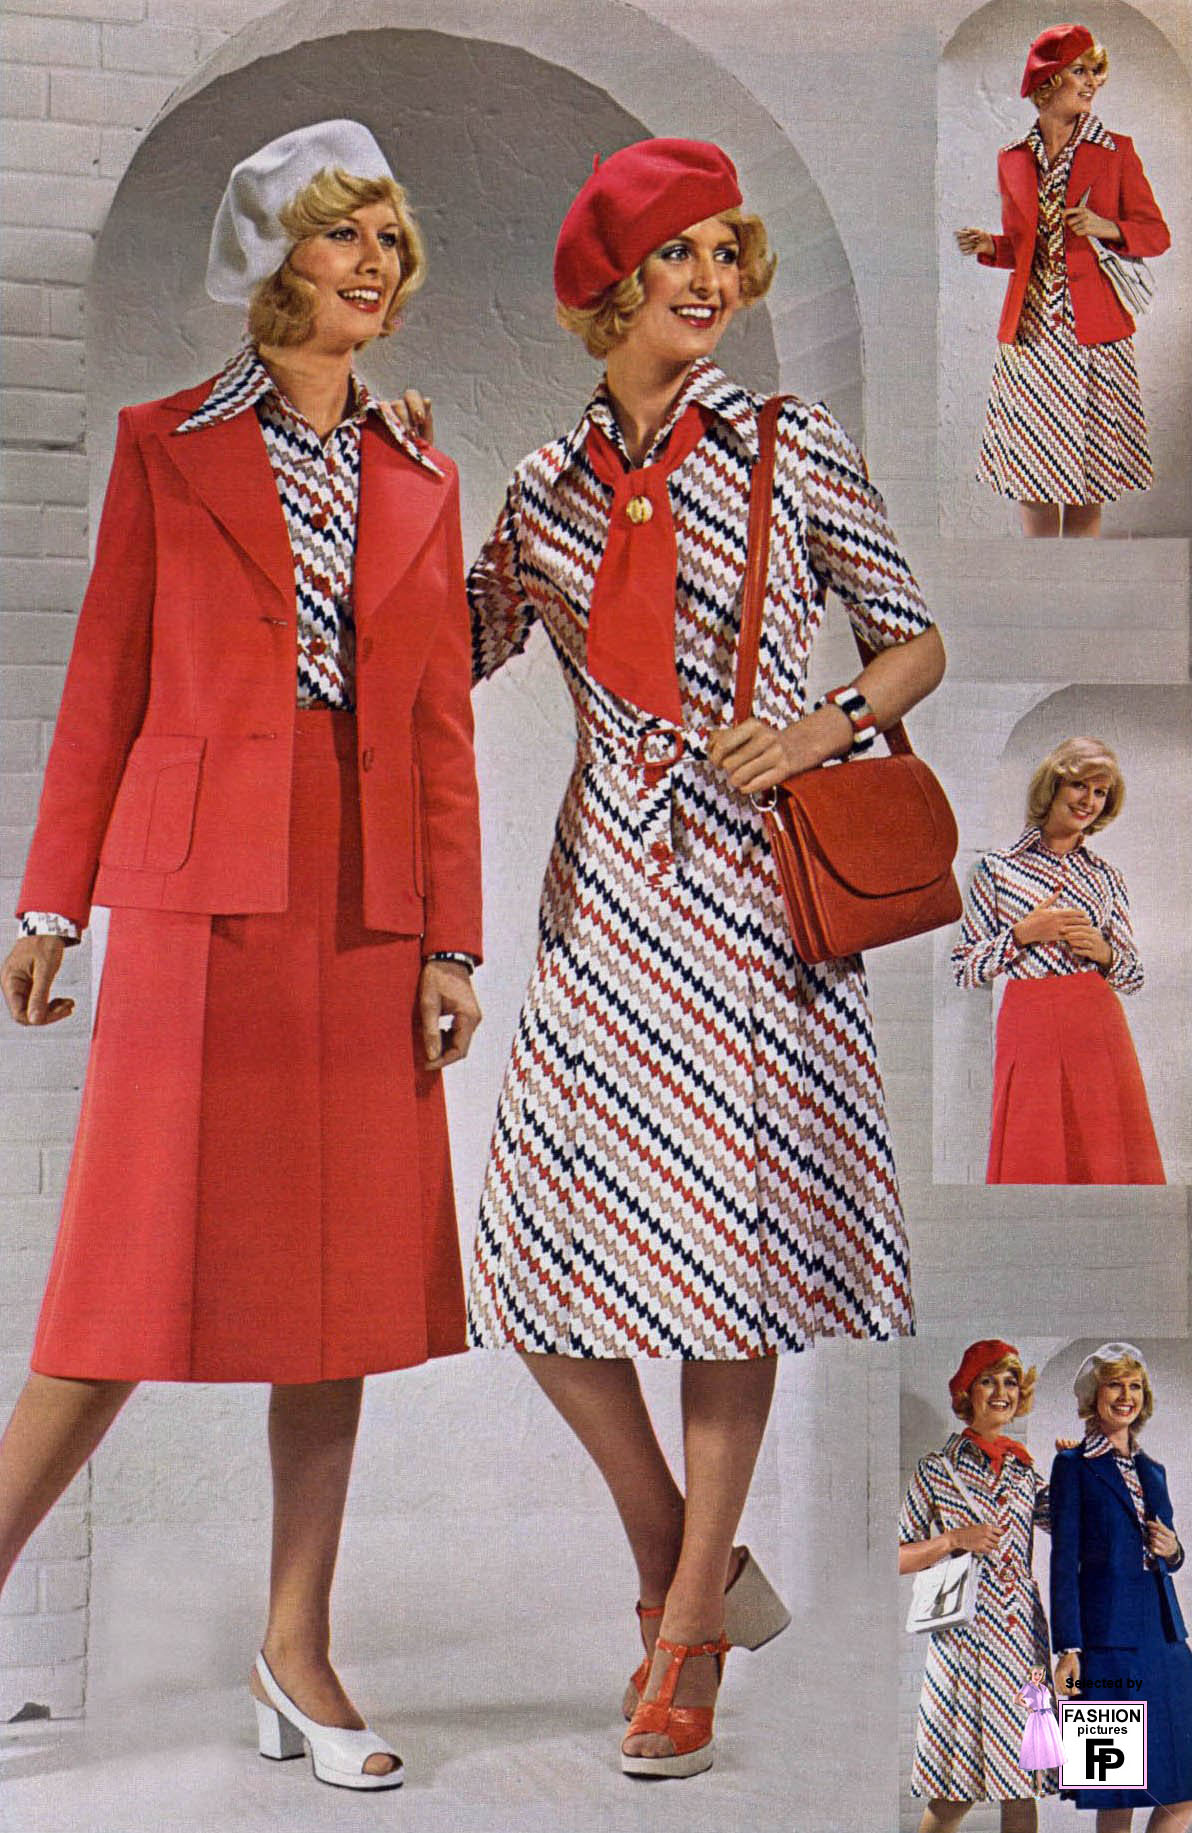 3 Easy Ways to Dress in the American 1950s Fashion Fashion from the 1950